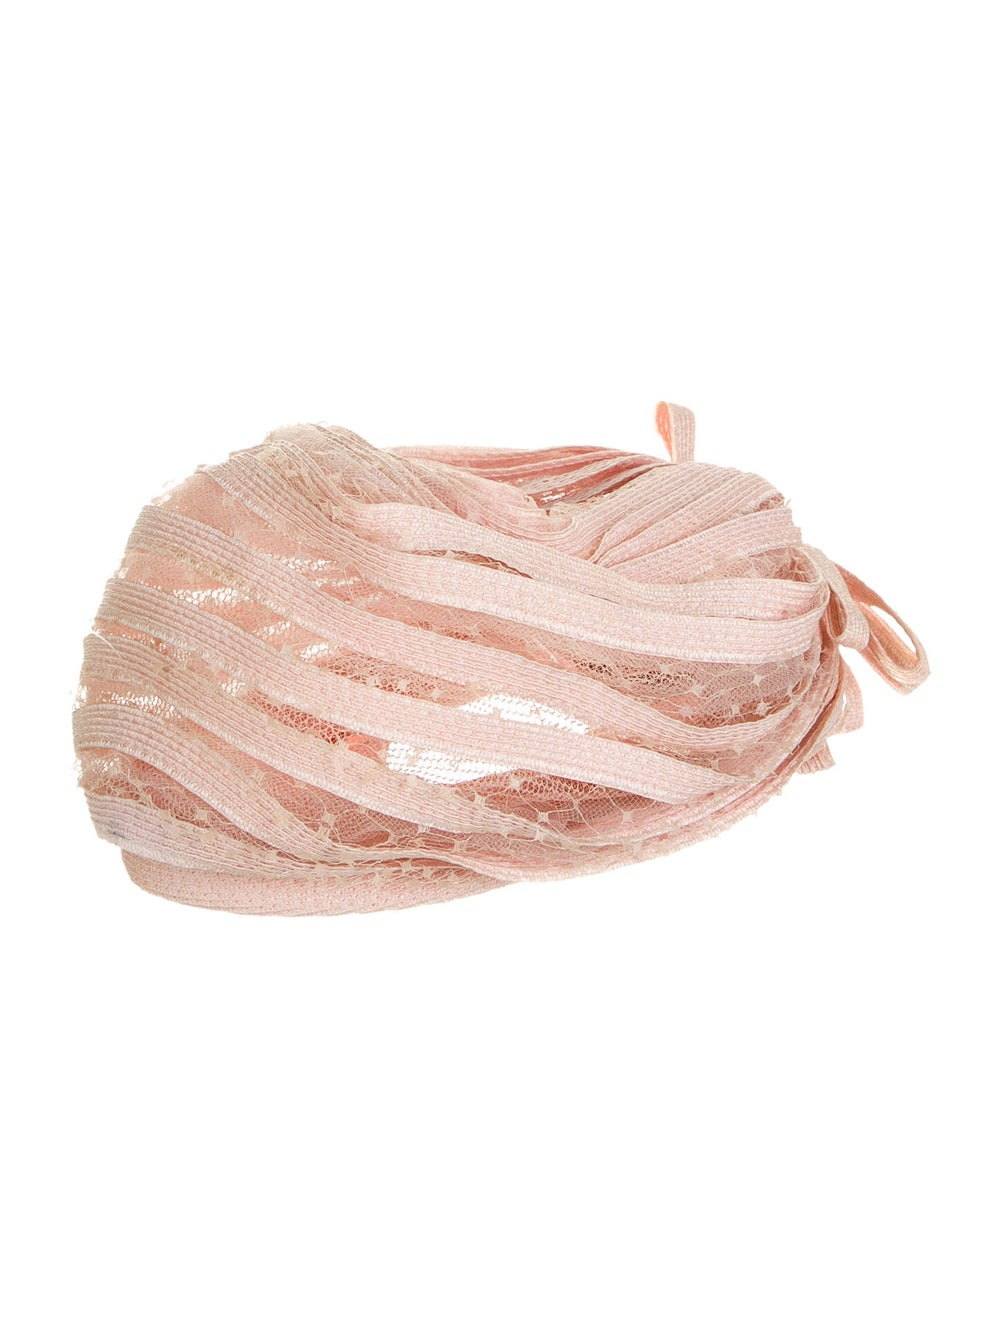 Christian Dior Lace Turban Hat Pink - image 2